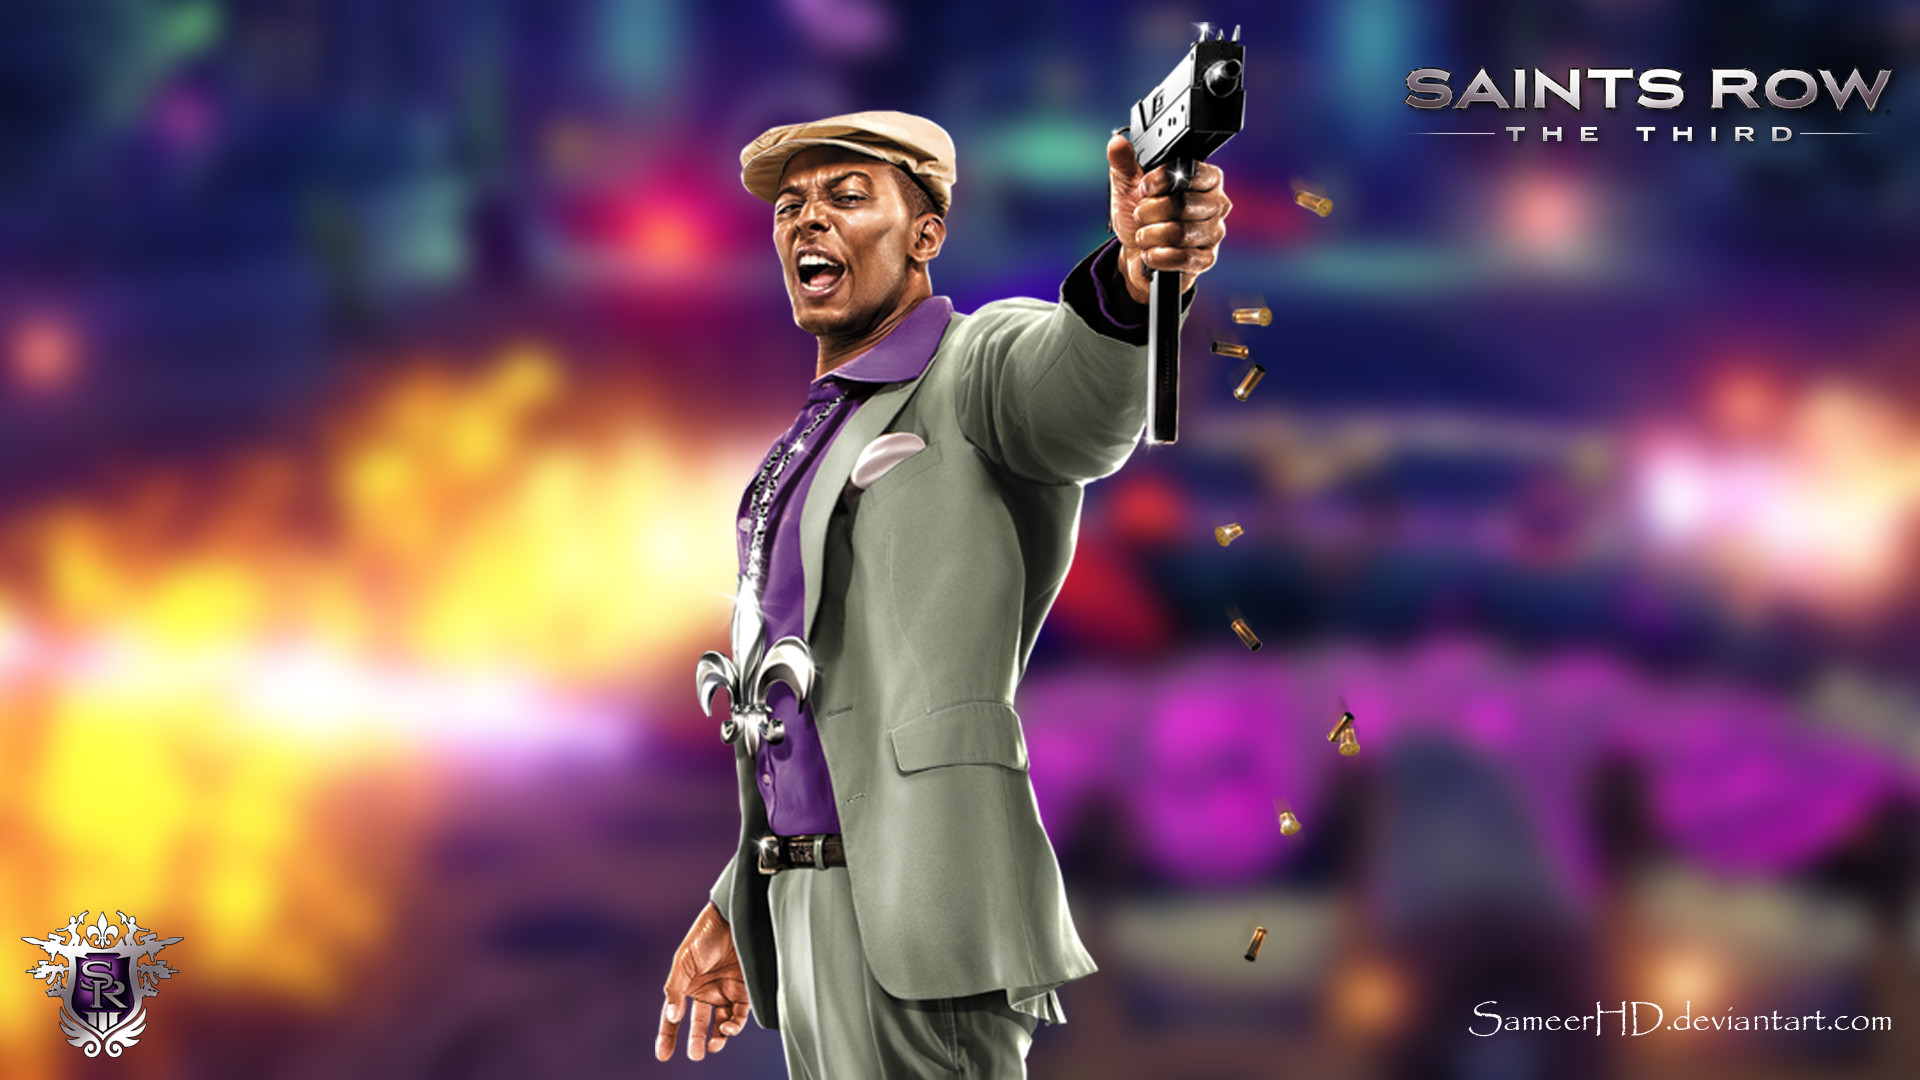 1920x1080 ... Saints Row III Pierce Washington Wallpaper by SameerHD